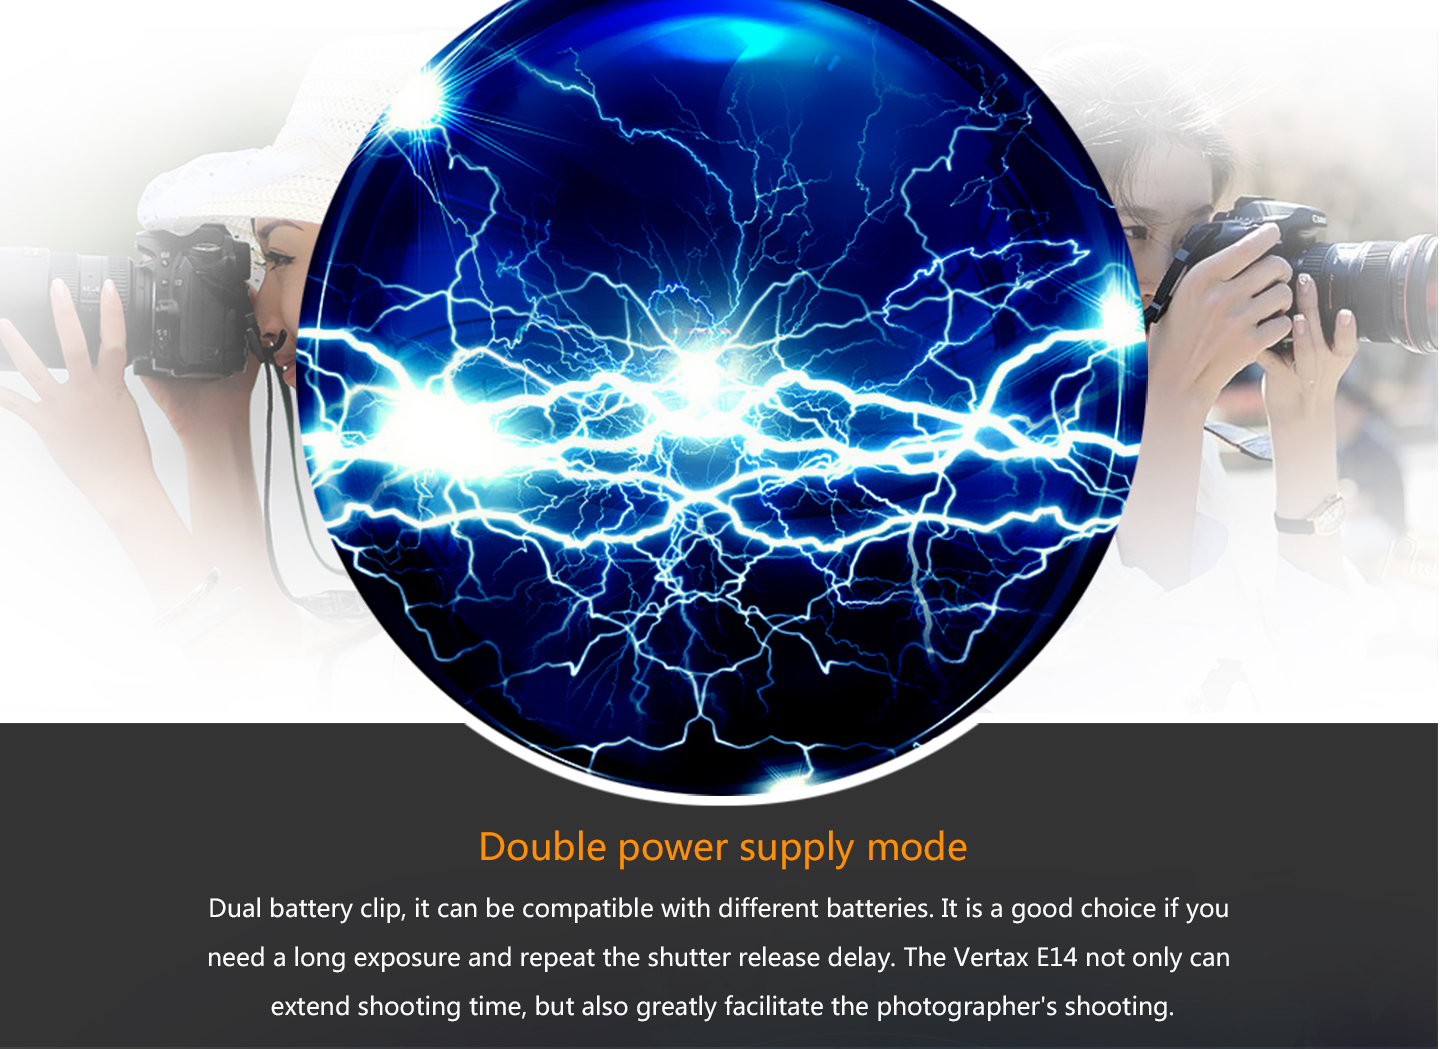 Double power supply mode